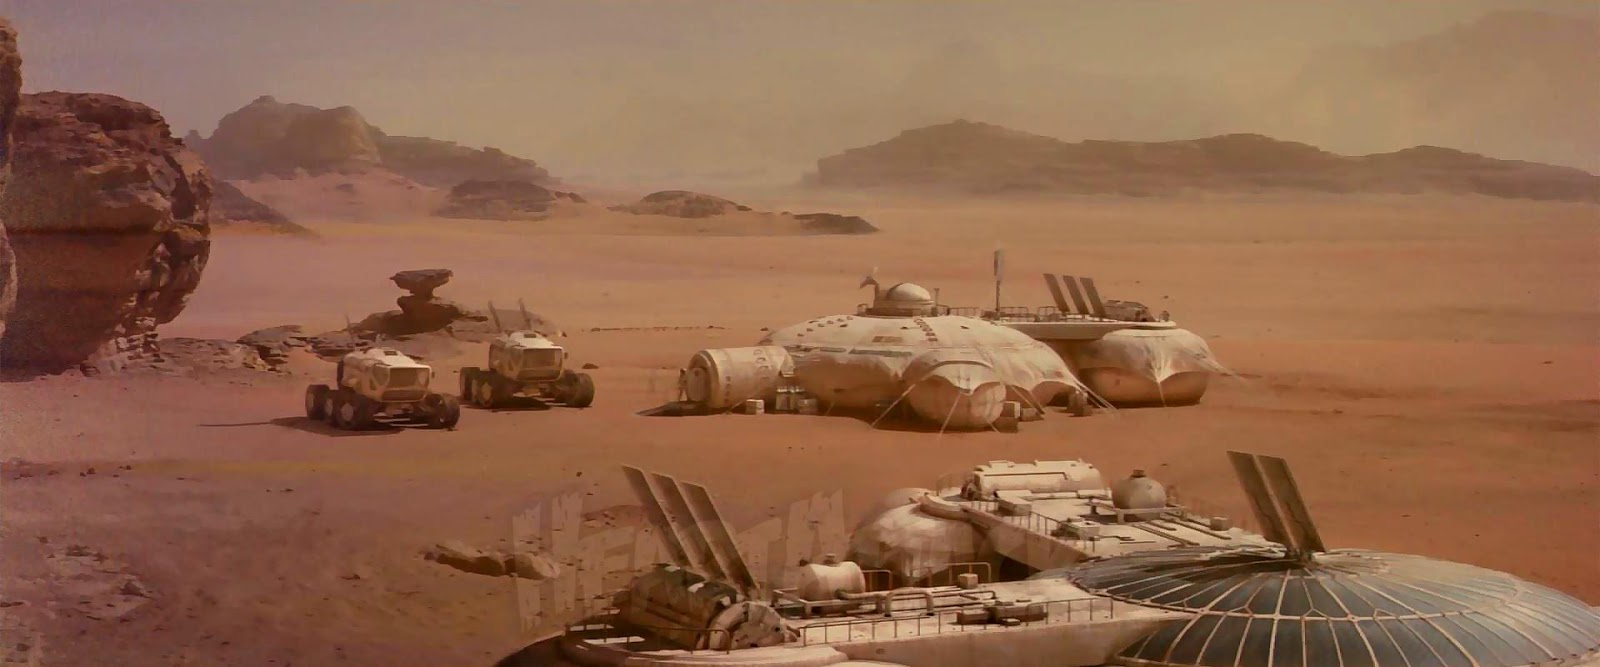 base-from-the-last-days-on-mars